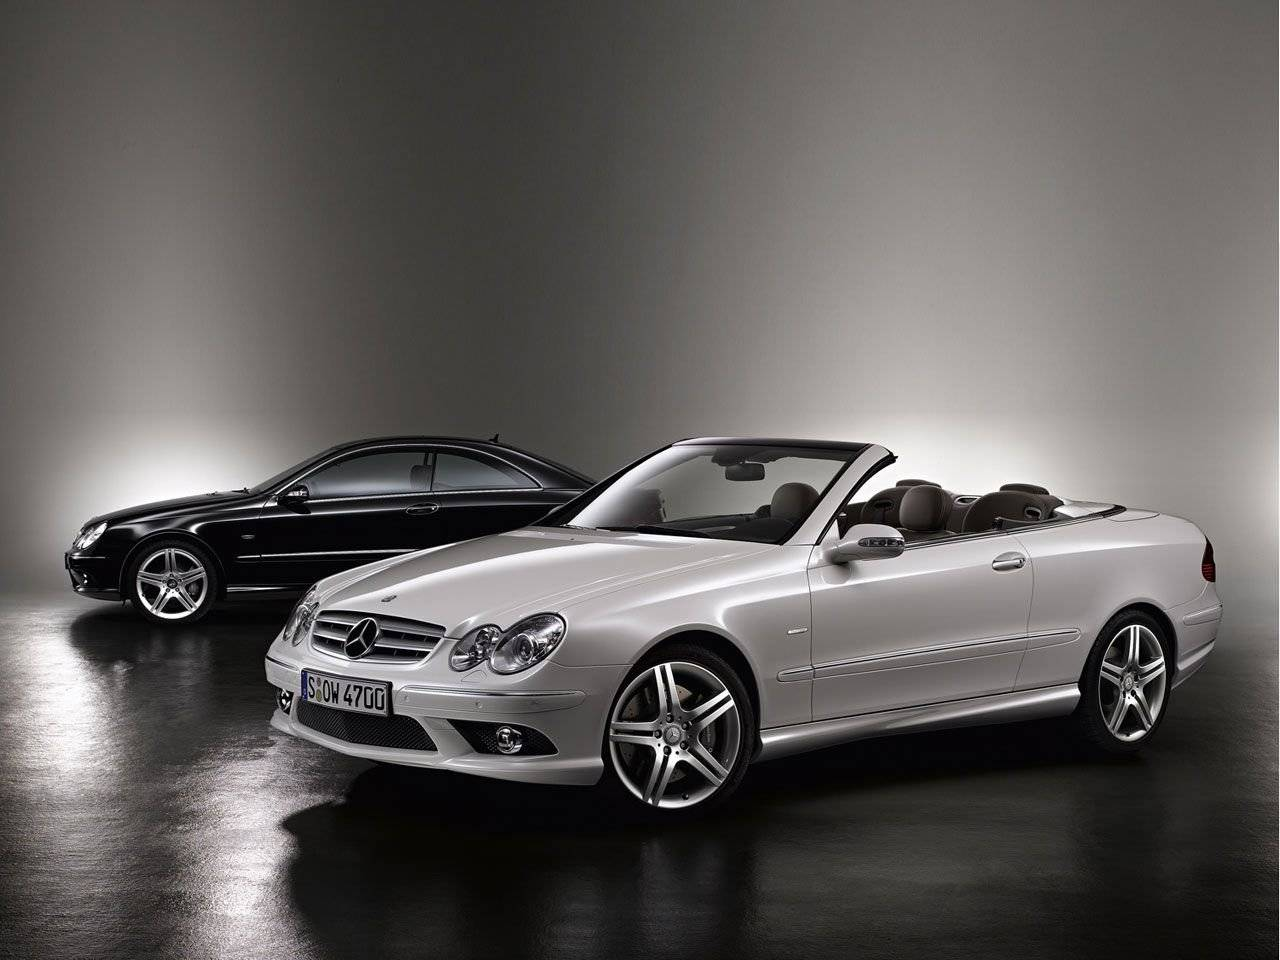 mercedes benz clk grand edition amg look a like autonieuws. Black Bedroom Furniture Sets. Home Design Ideas